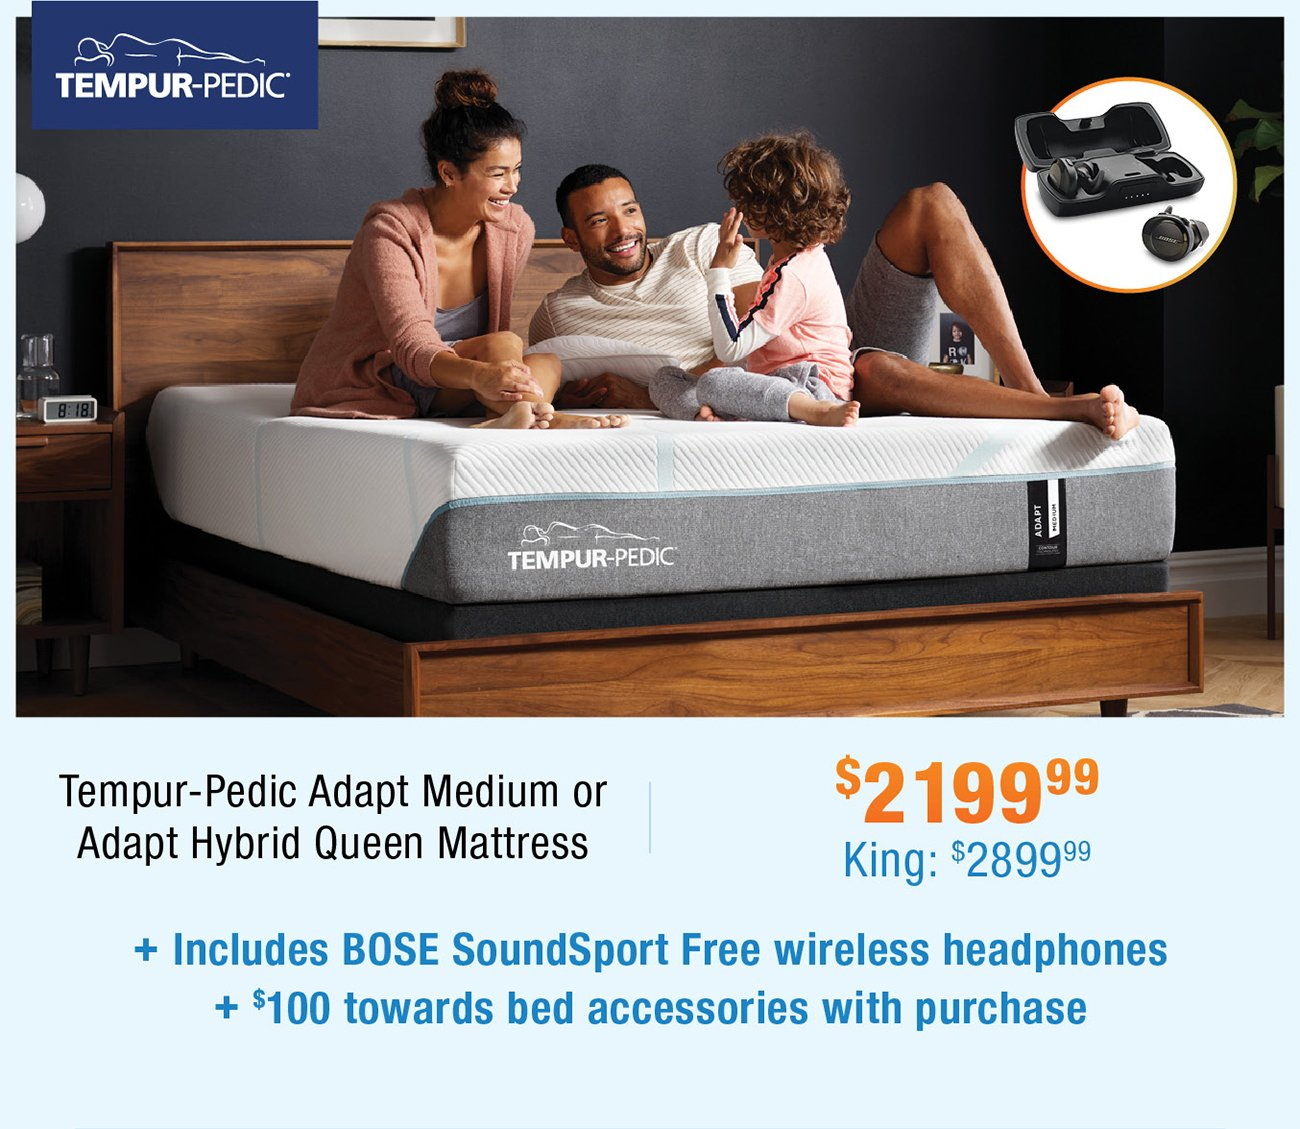 Tempur-pedic-adapt-queen-mattress